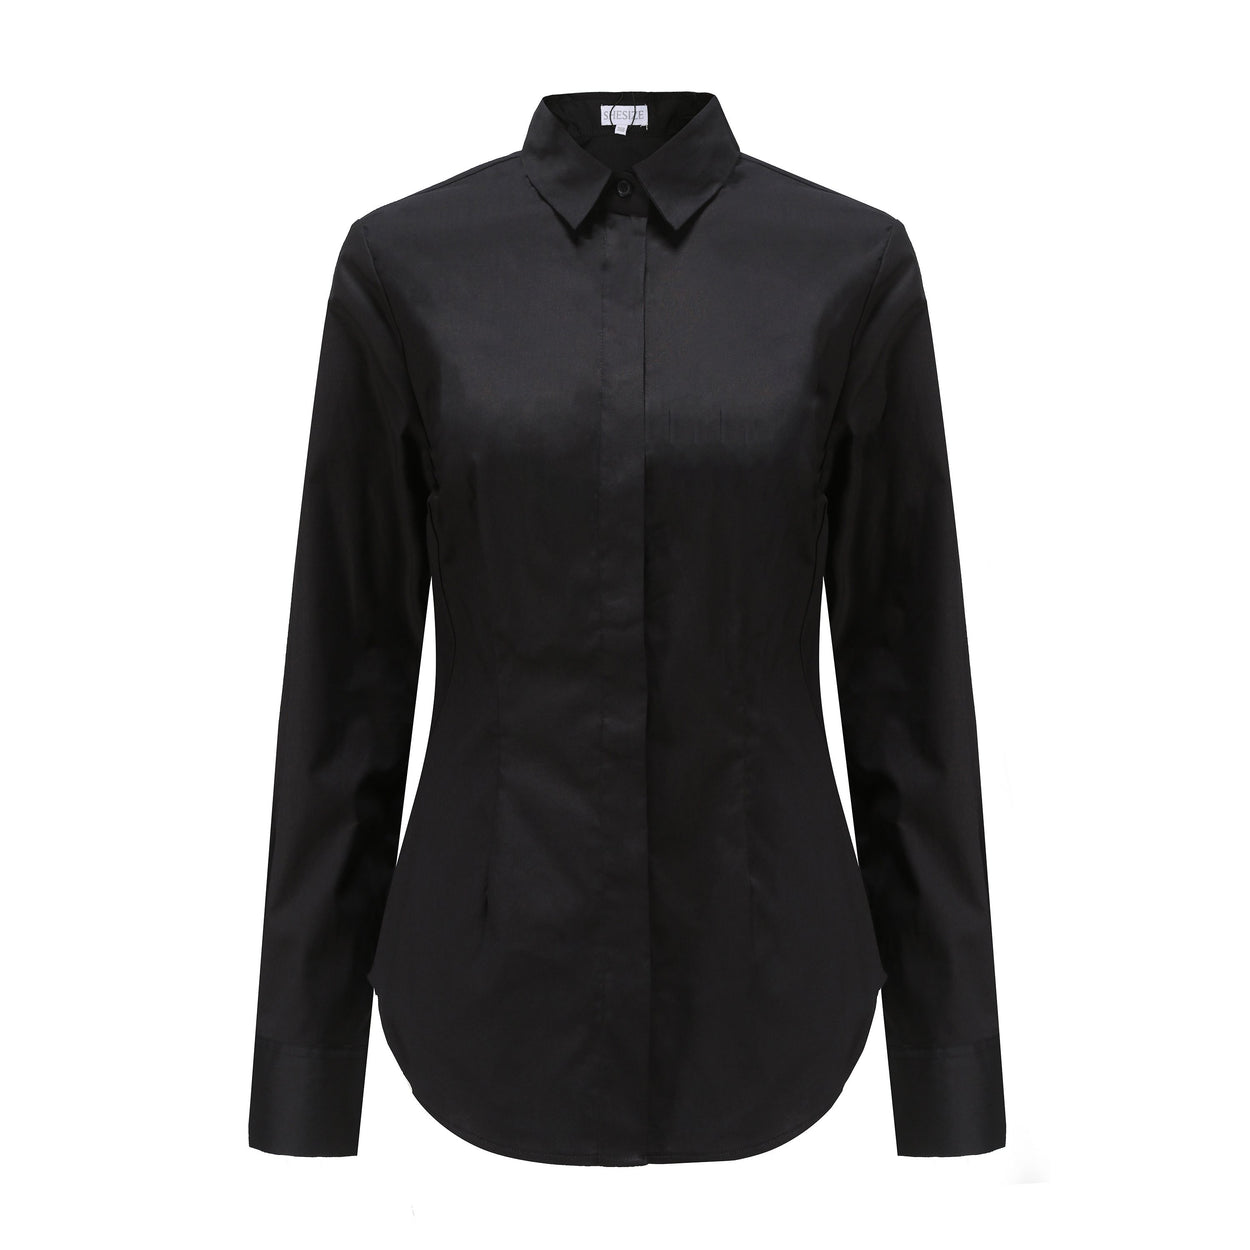 The Signature Shirt - Black